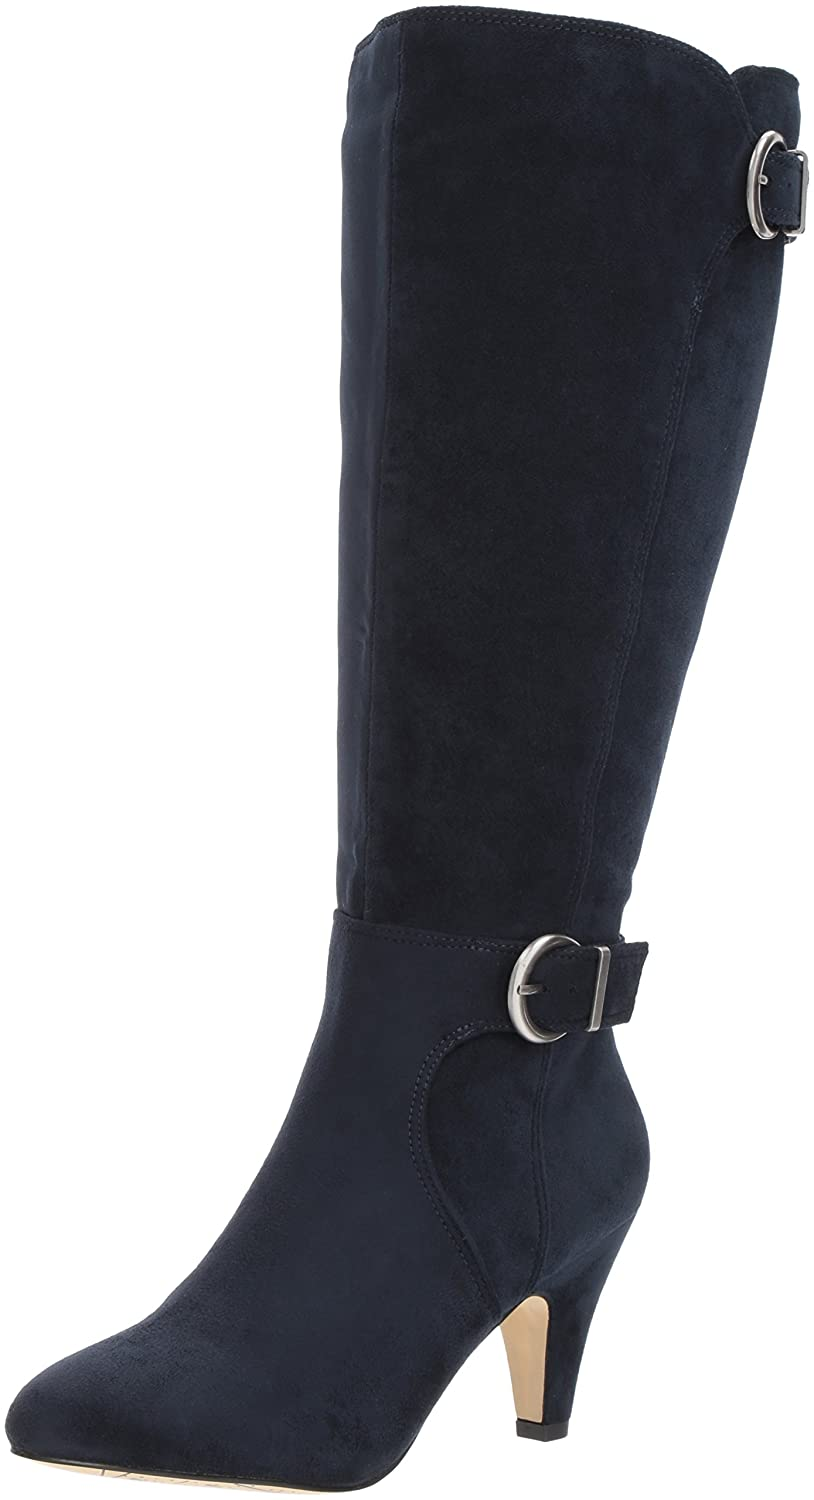 Bella Vita Women's Boot Toni Ii Plus Harness Boot Women's B06ZYJNZRY 8.5 B(M) US|Navy Super Suede e0979e